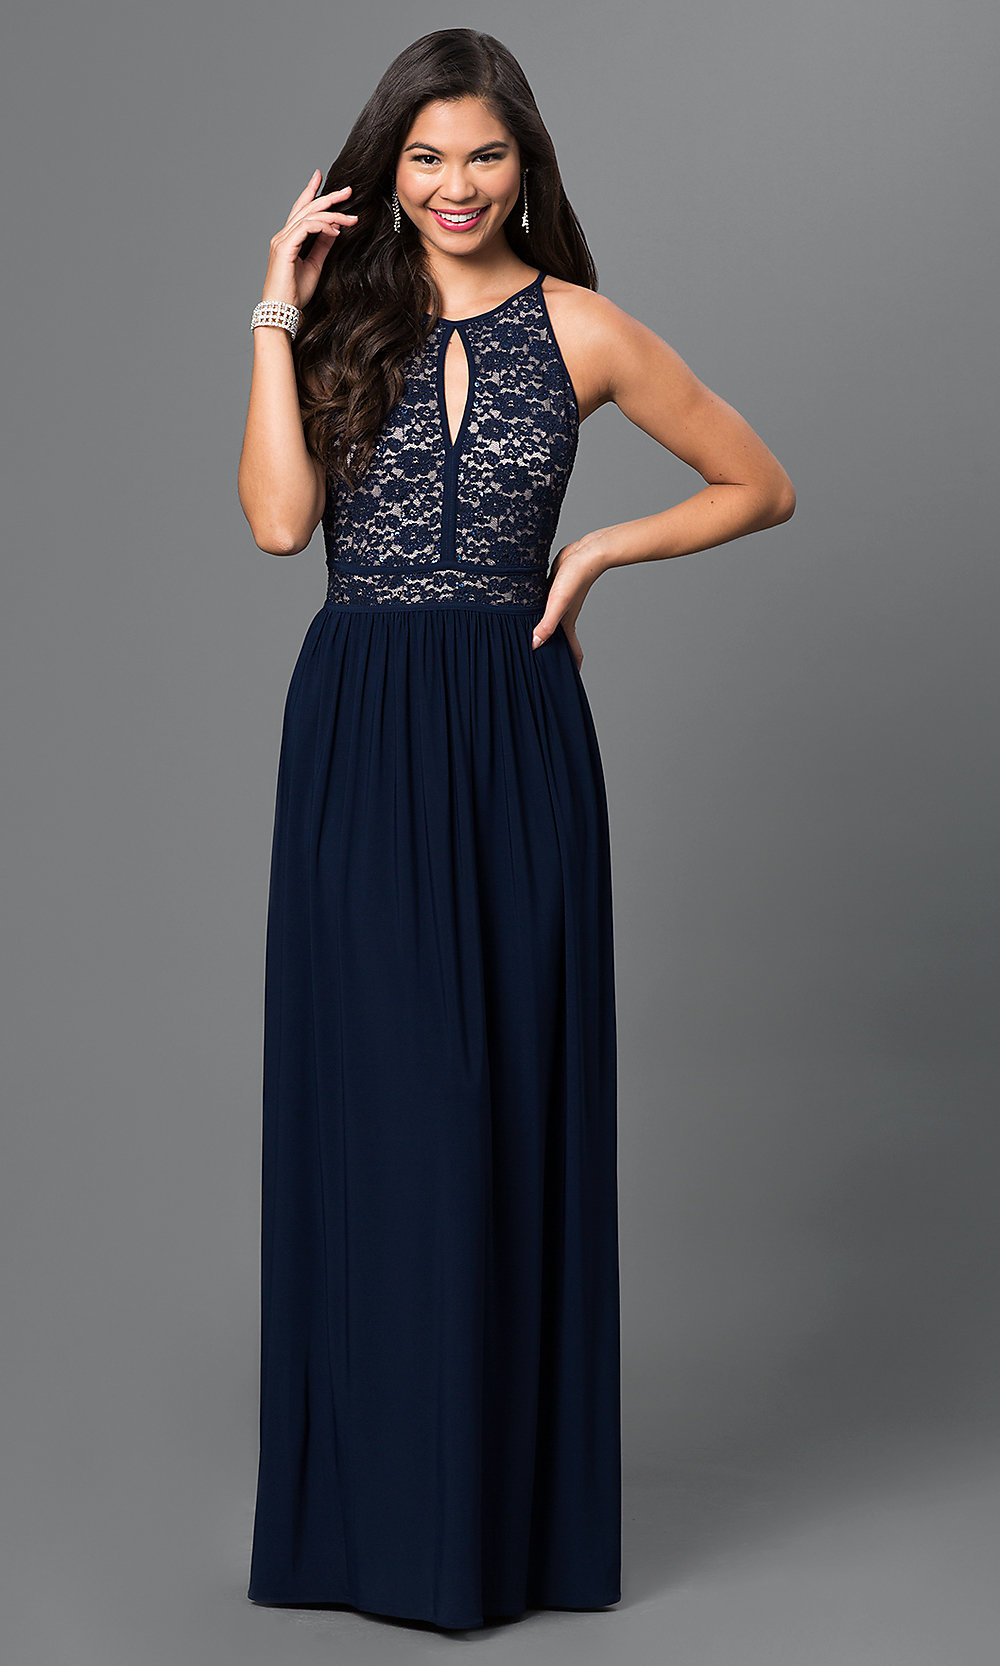 Lace navy cocktail dress